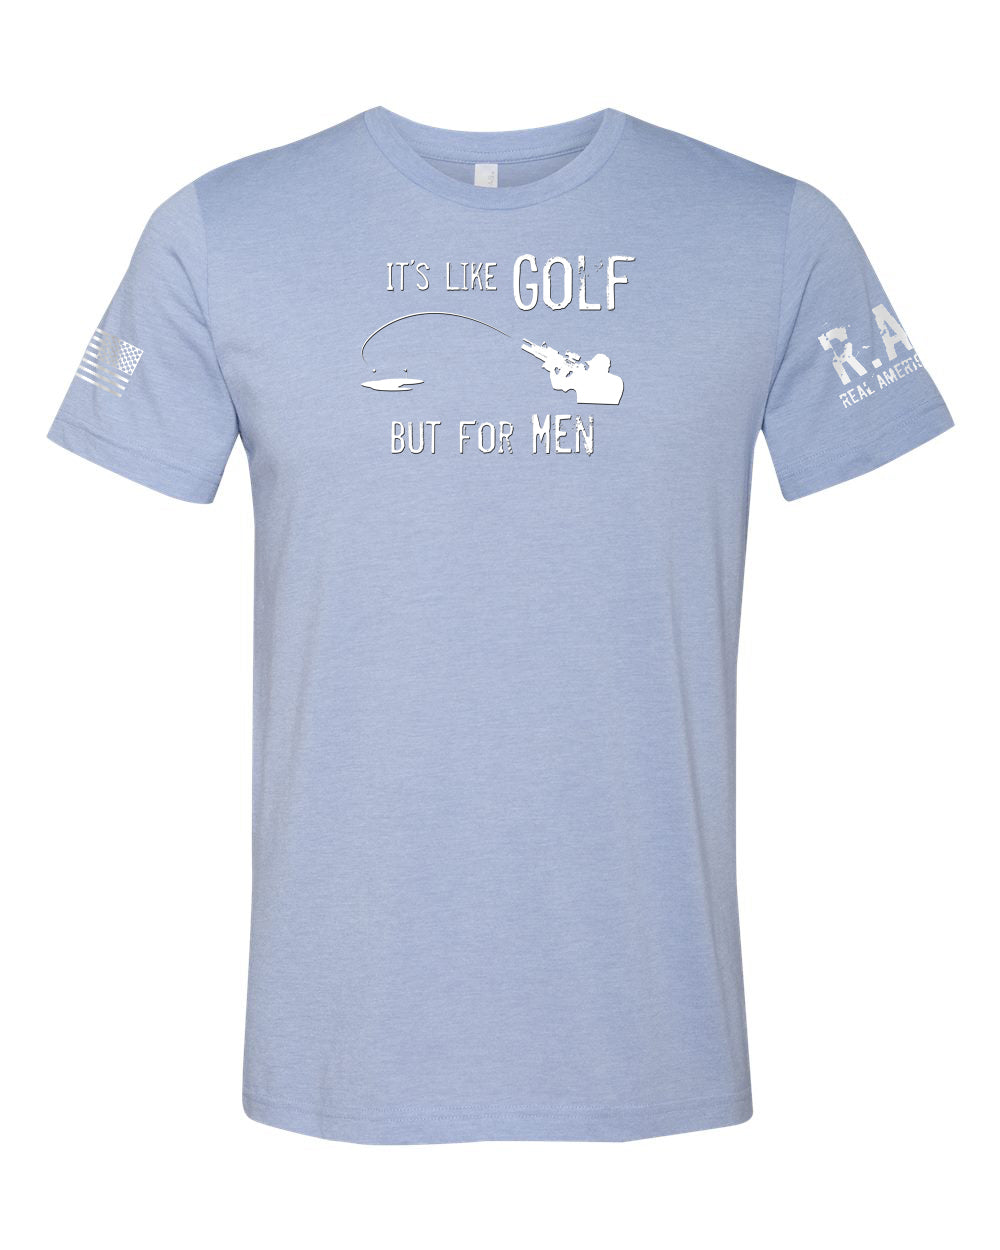 SOS Golf but for Men